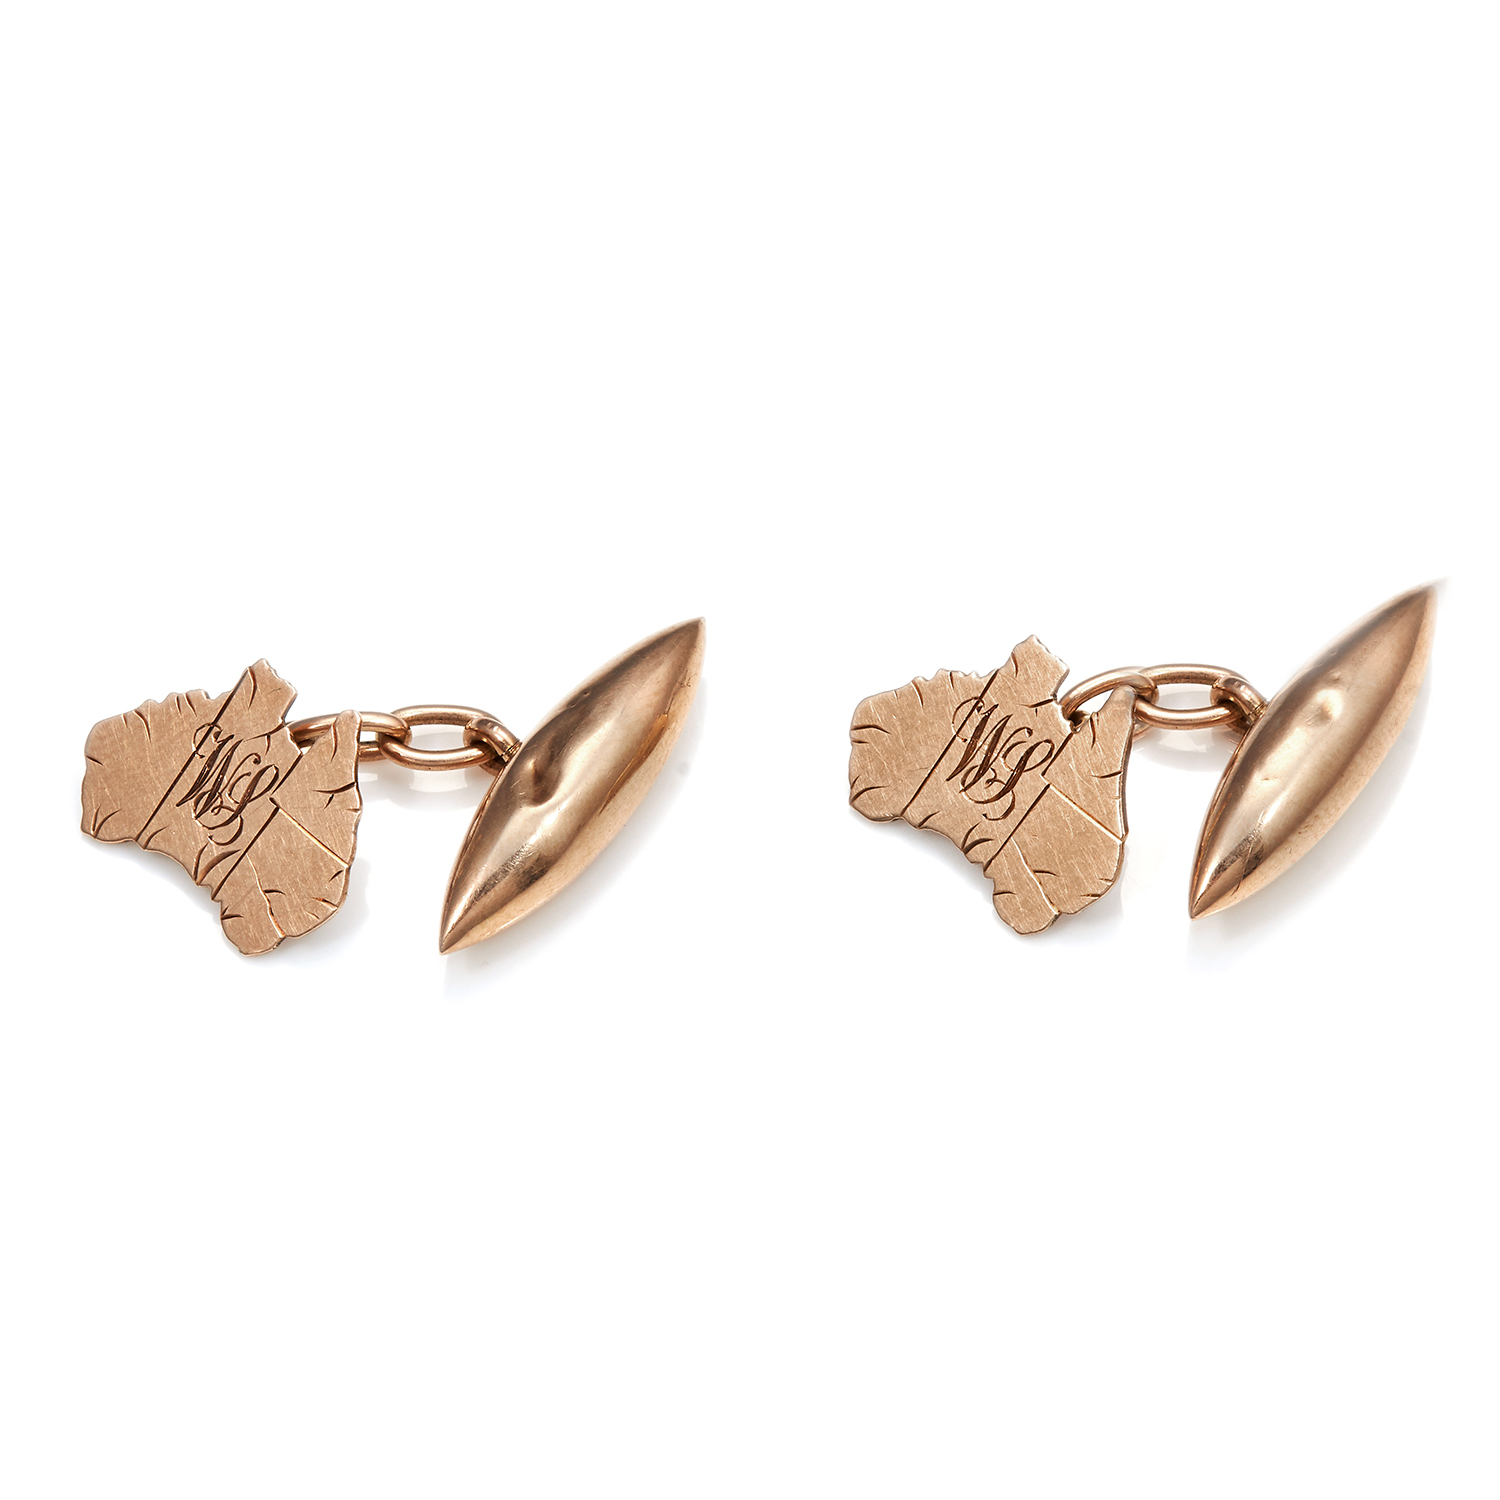 A PAIR OF MAP OF AUSTRALIA CUFFLINKS in 9ct yellow gold, in the shape of the map of Australia,